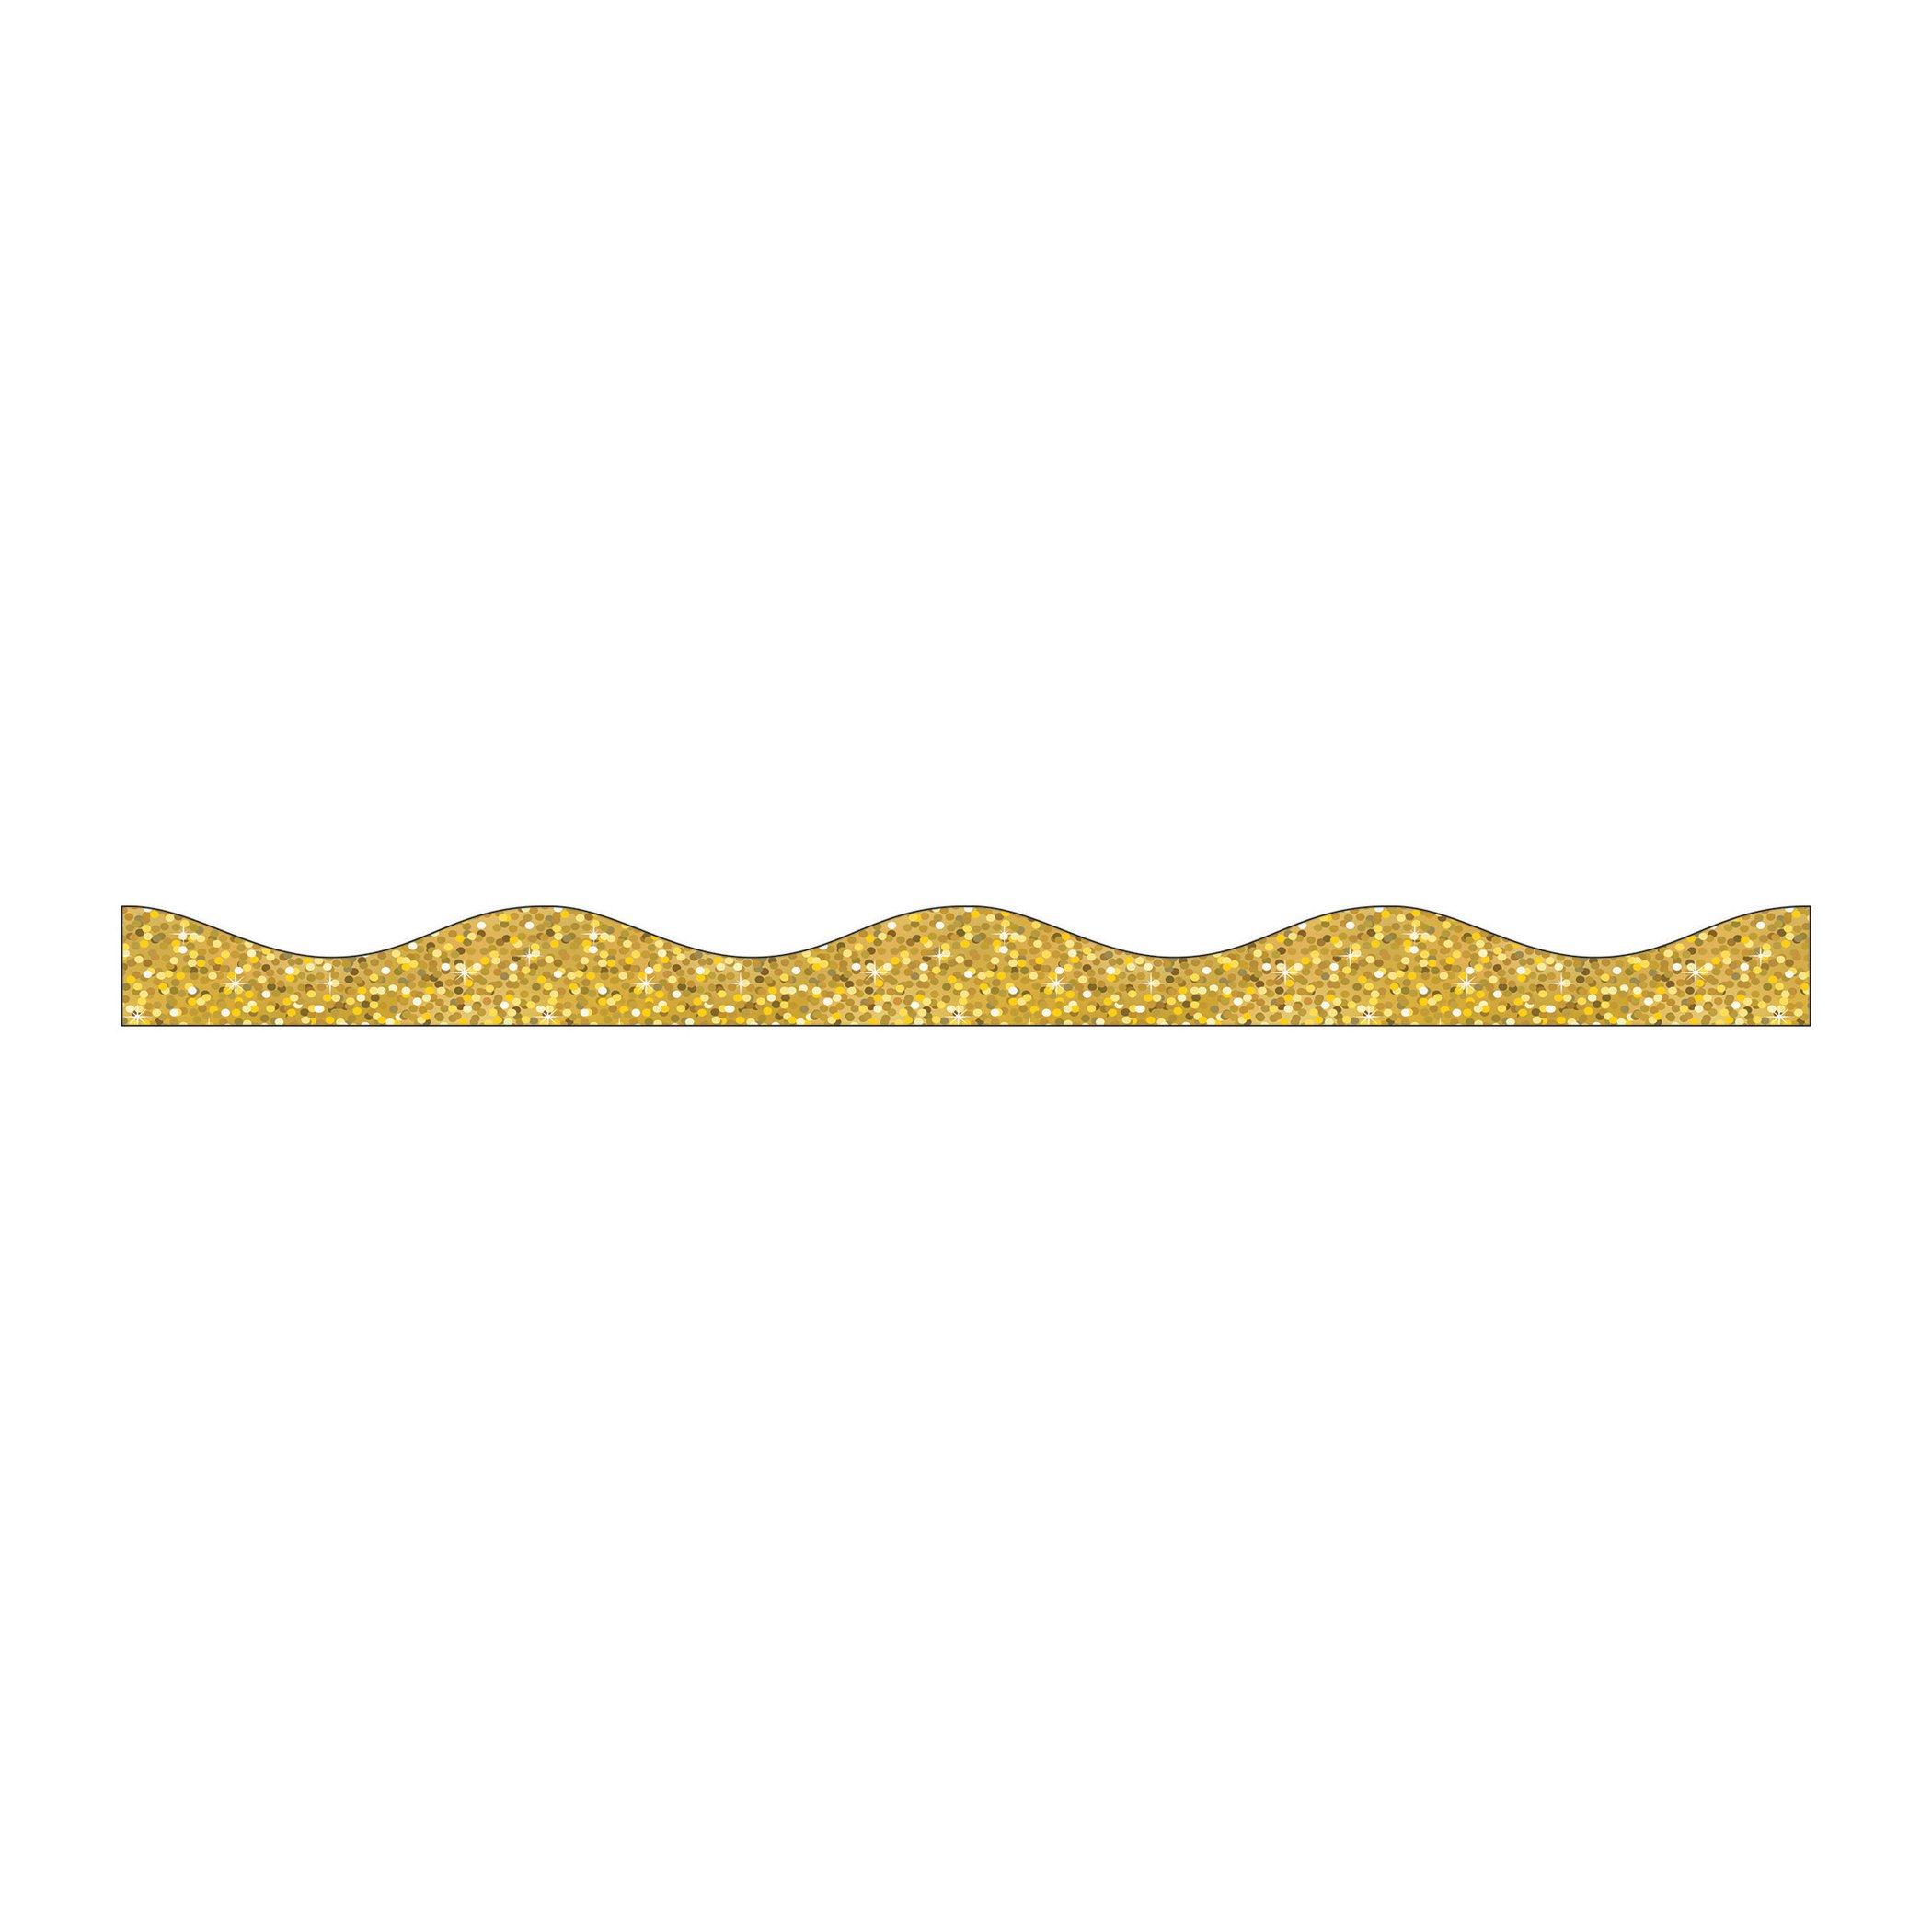 Ashley Productions Magnetic Border, Gold